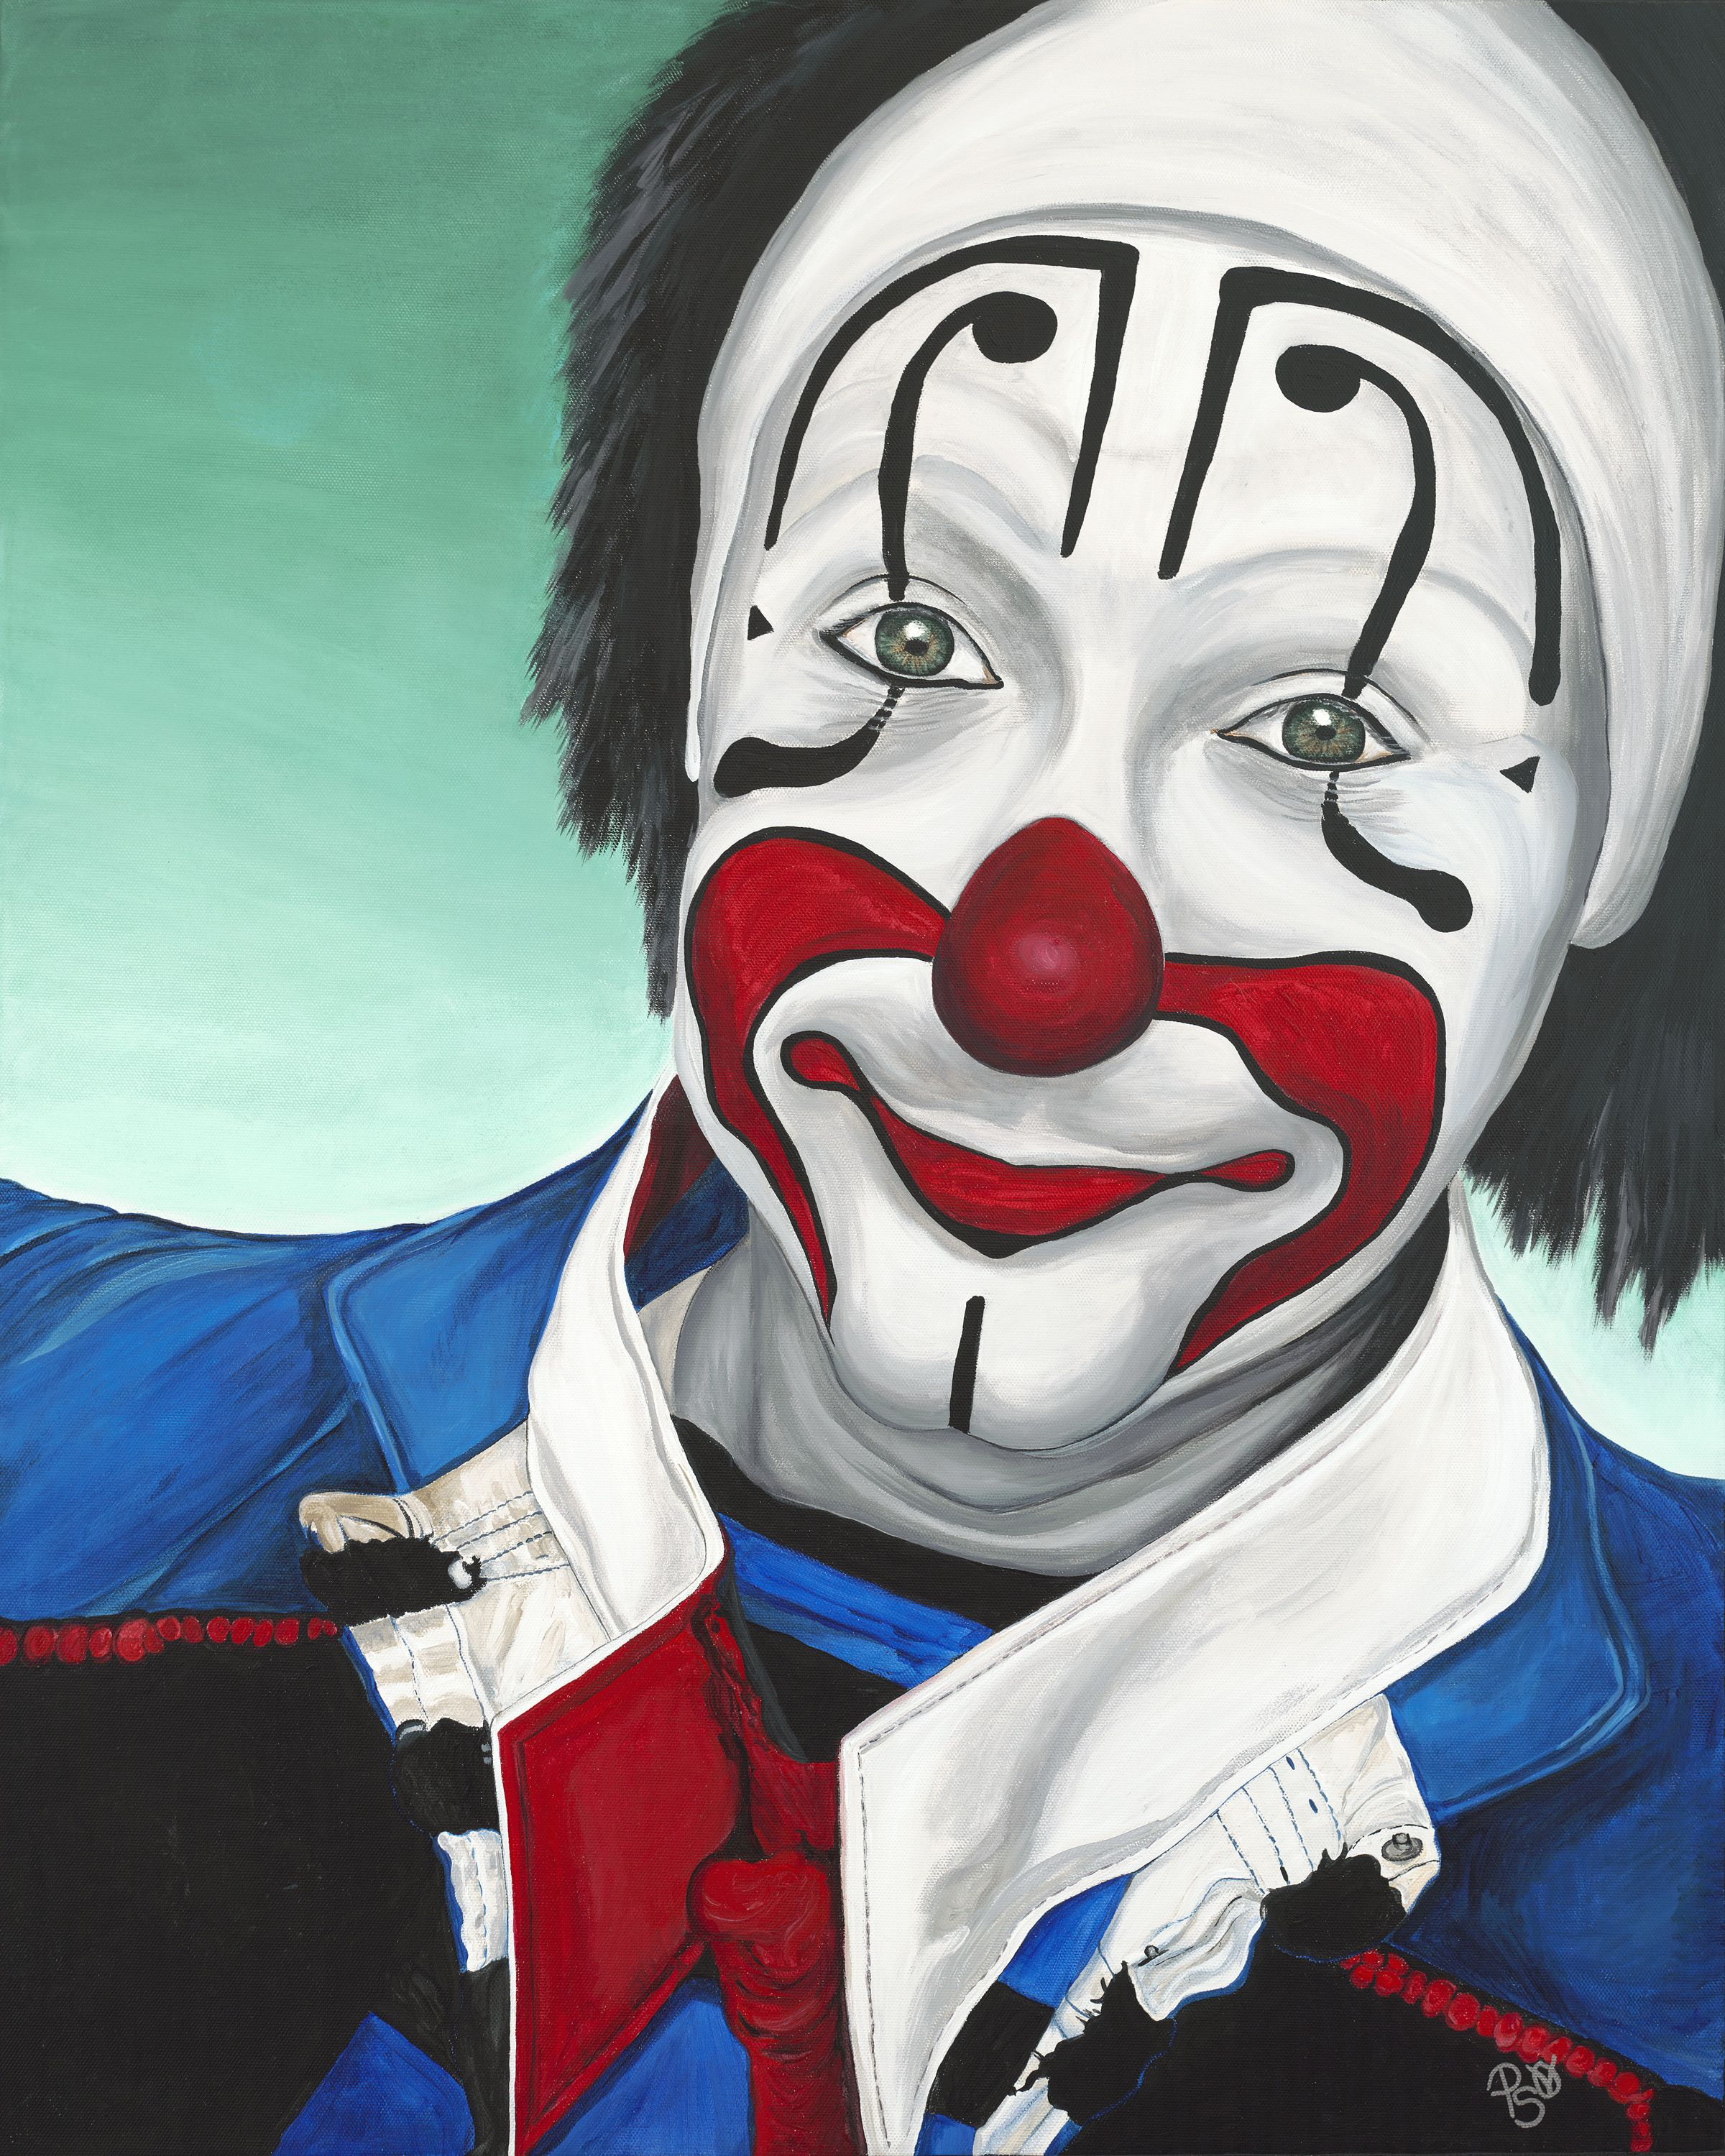 traditional clown makeup - Google Search | Clowns and ...